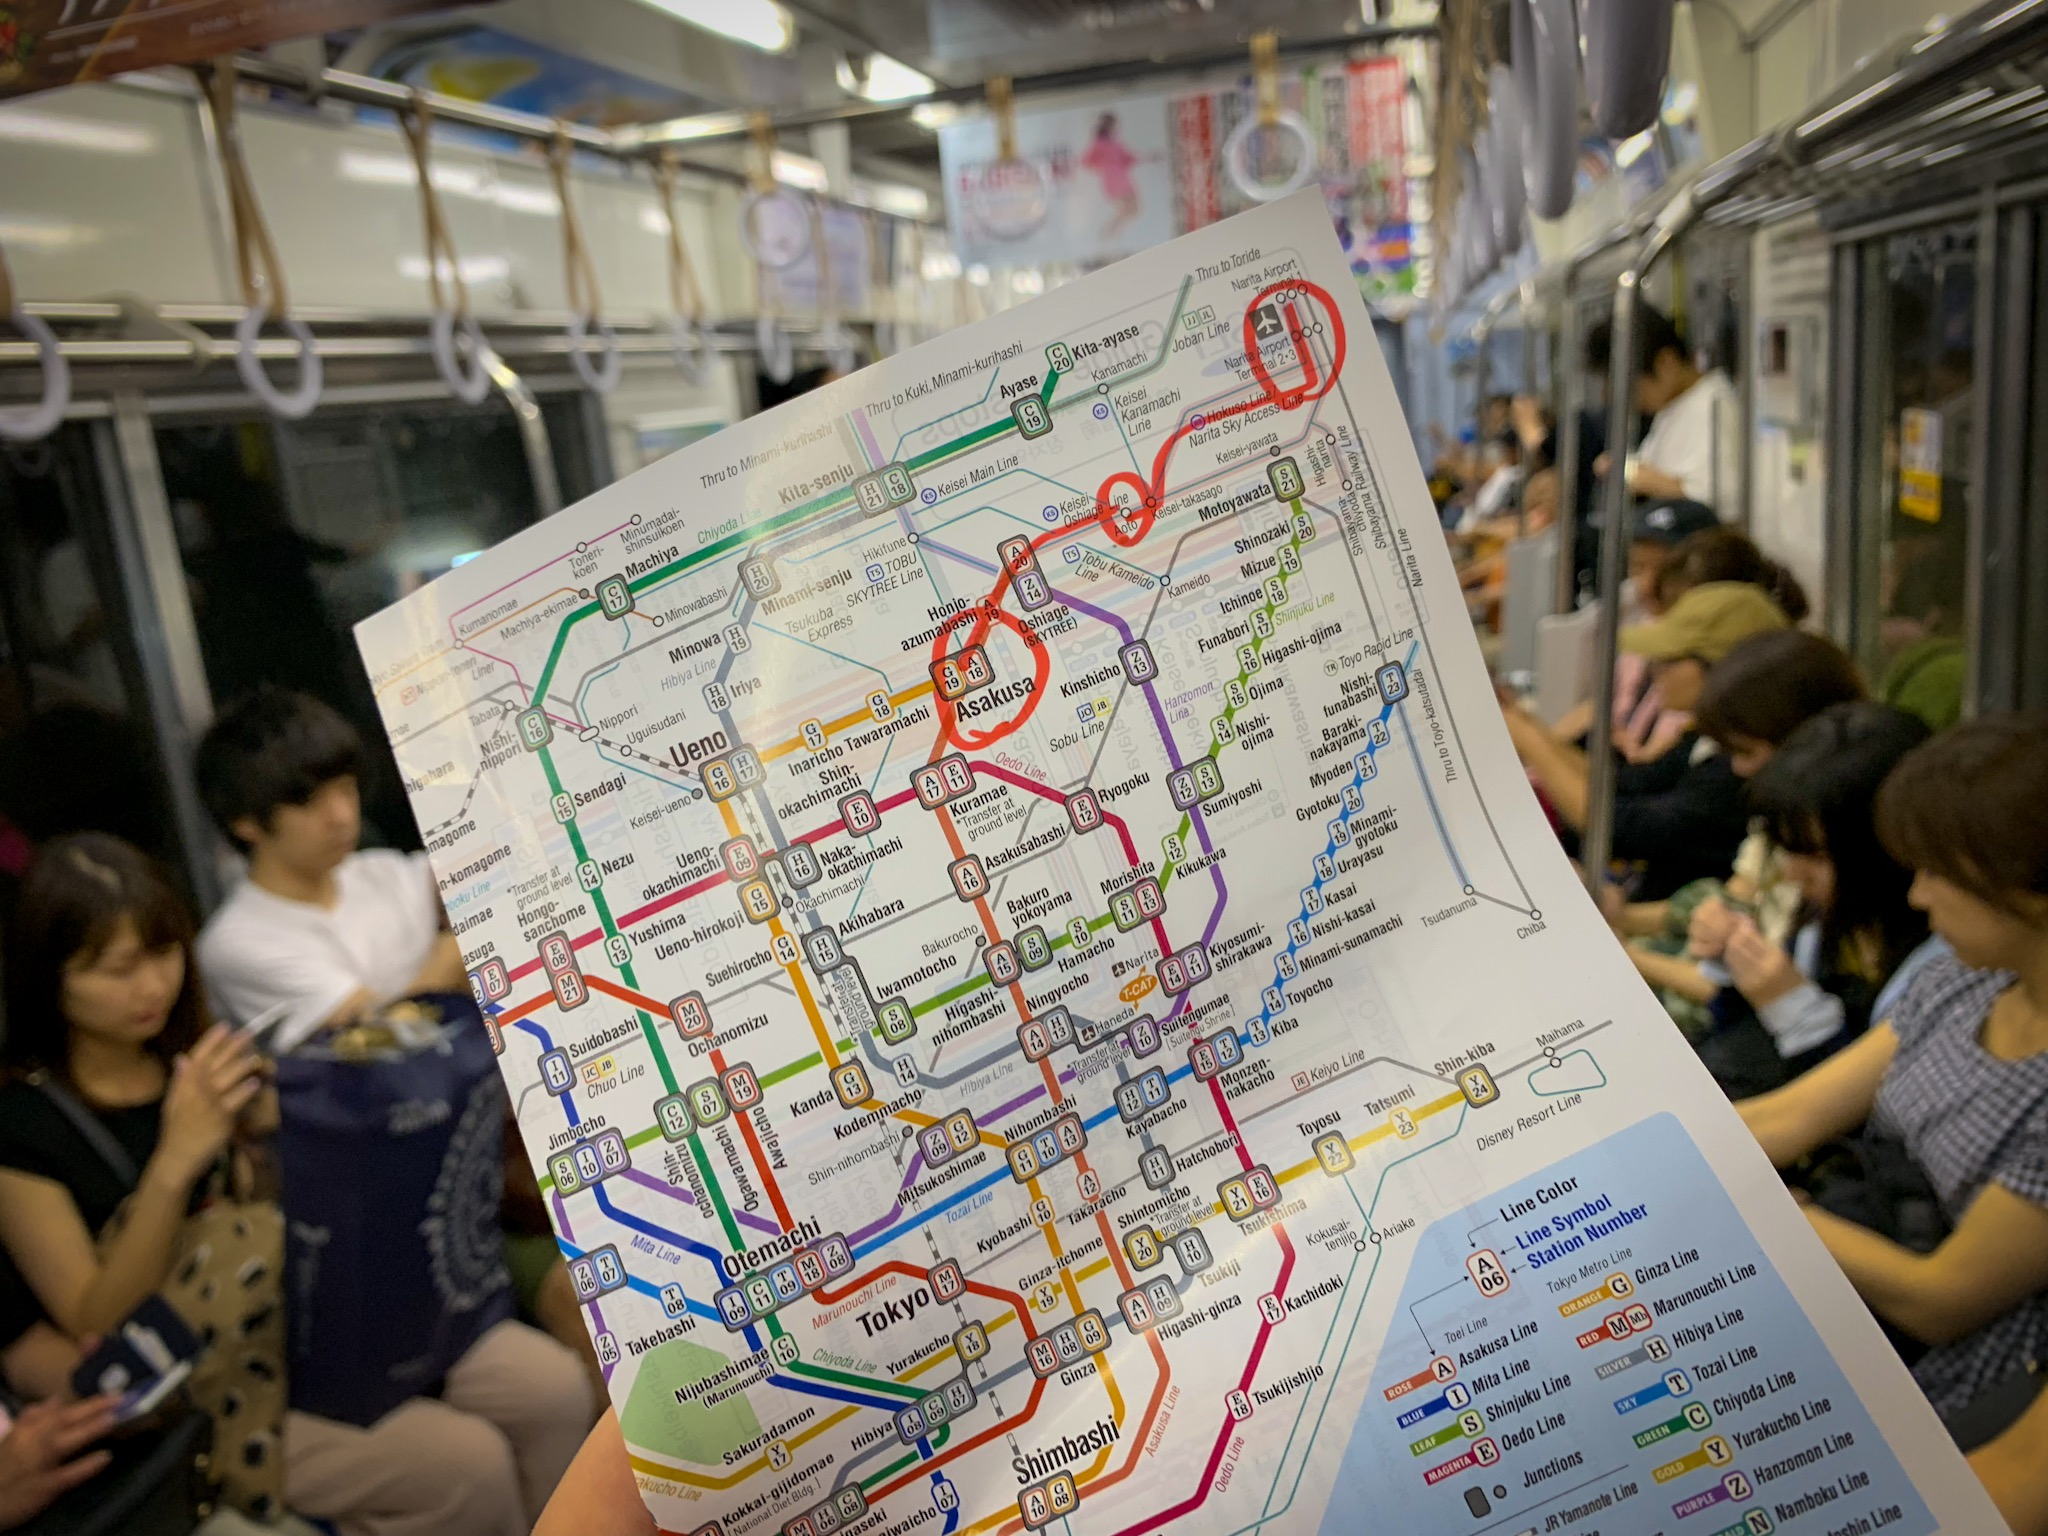 The map I used to navigate from Narita Airport to Asakusa, the district in which I was staying.